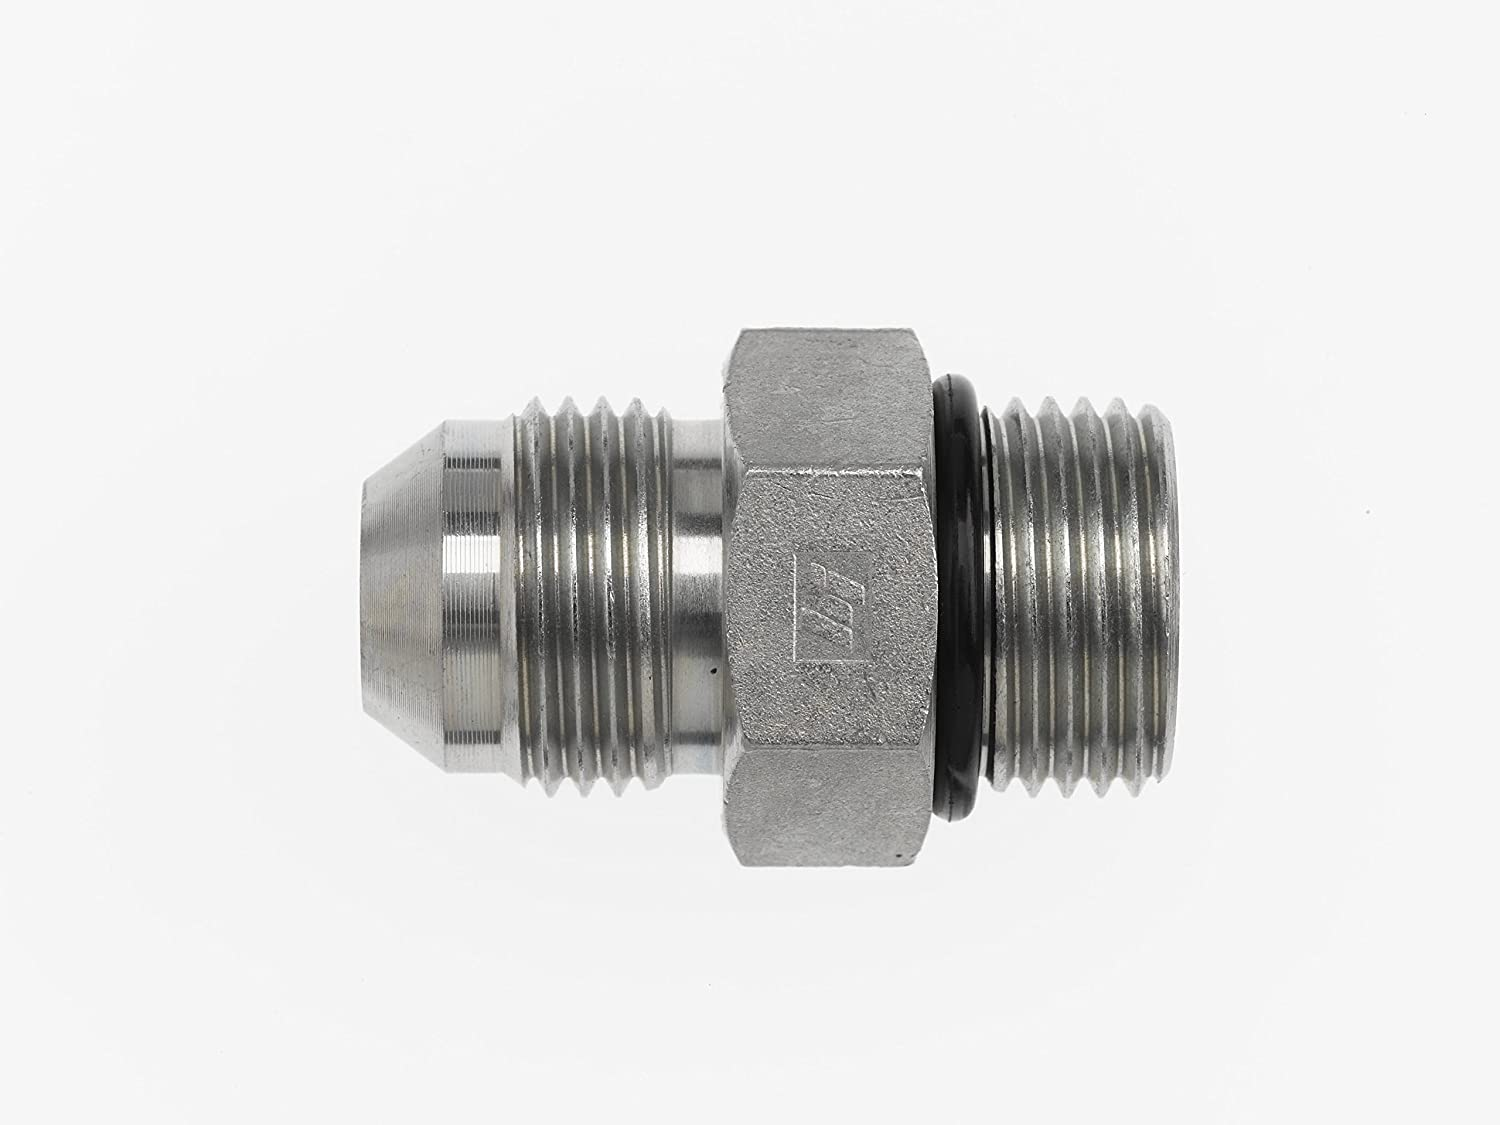 UNICORP SCB500-416-3 Hex Socket Shoulder Screw- 5//16 Shoulder Dia 7//32 Head Ht 1//4-20 Thread 3//8 Shoulder Lg 1//2 Head Dia 416 Stainless QTY-10